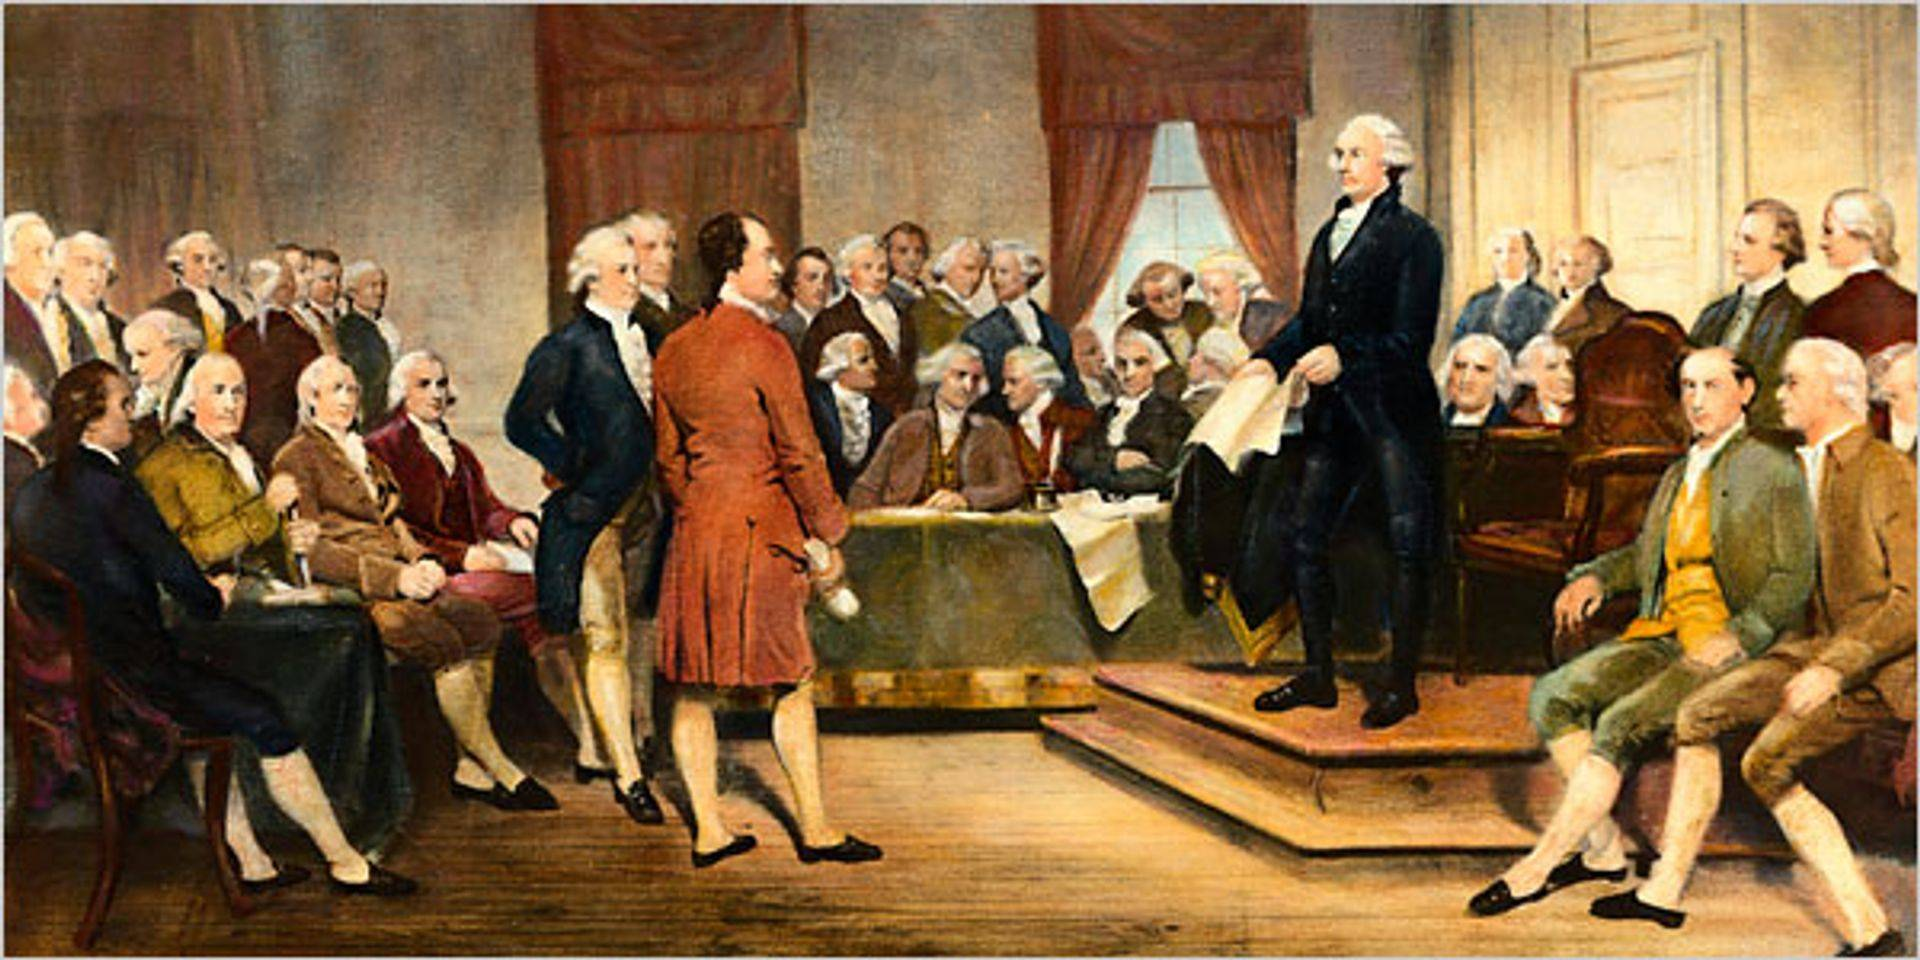 the separation of powers as created by the founding fathers in america